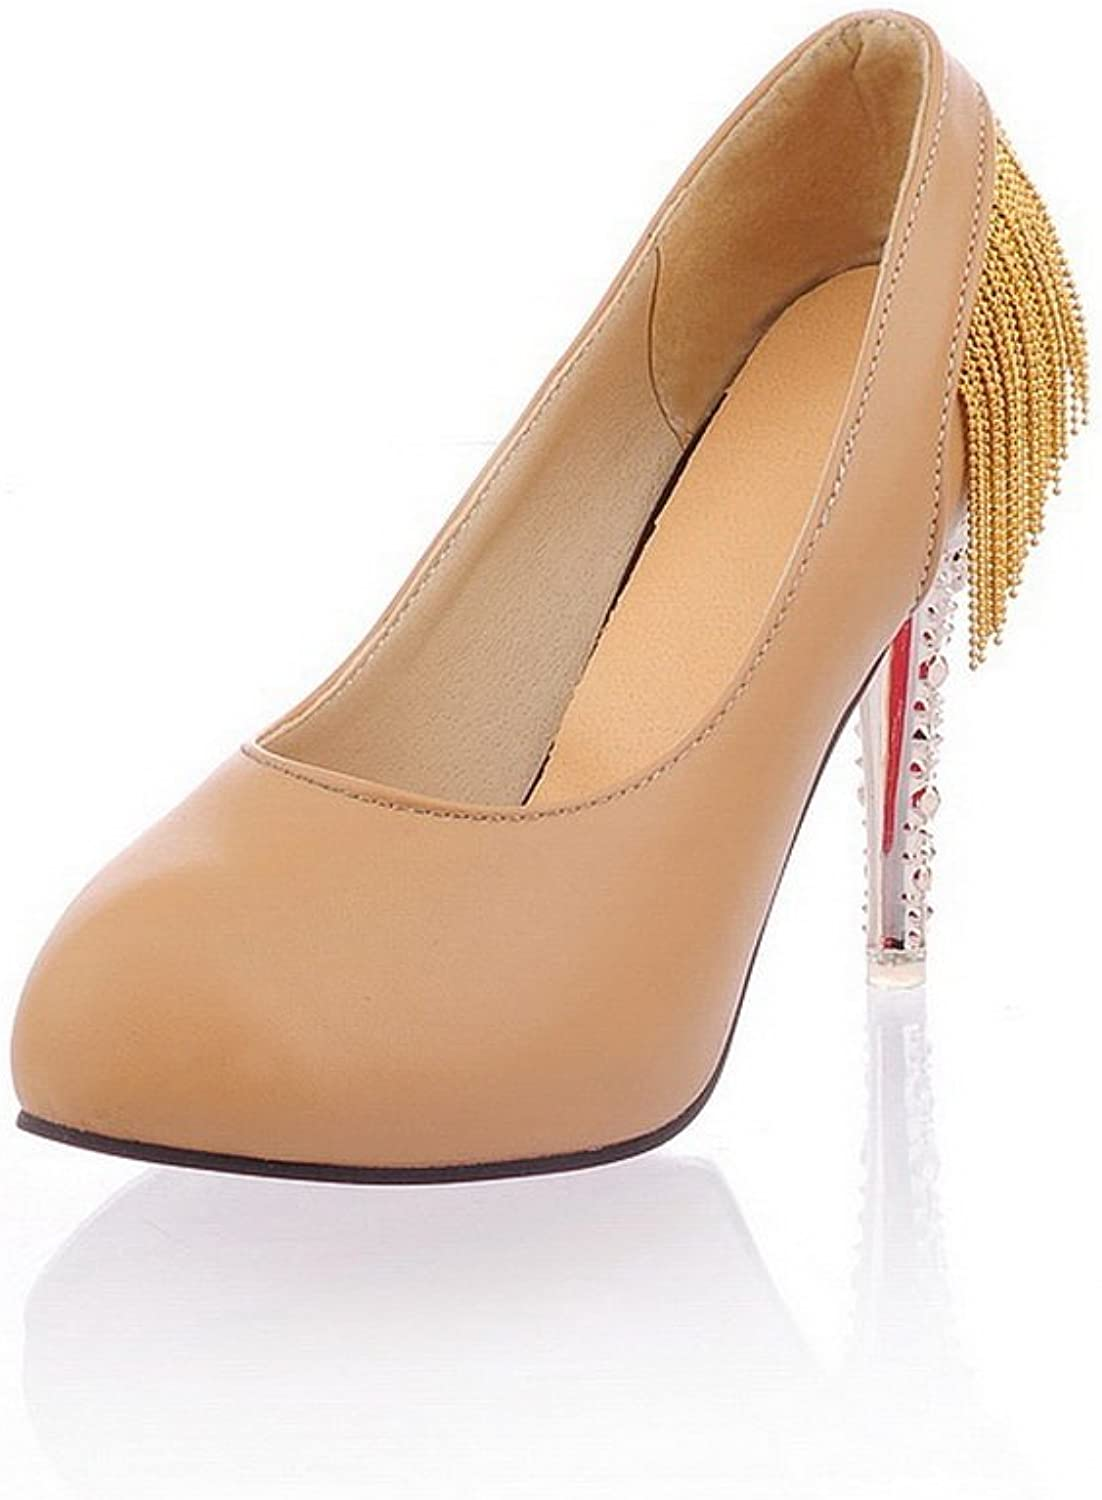 BalaMasa Ladies Crystal Heels Metal Chain Low-Cut Uppers Imitated Leather Pumps-shoes